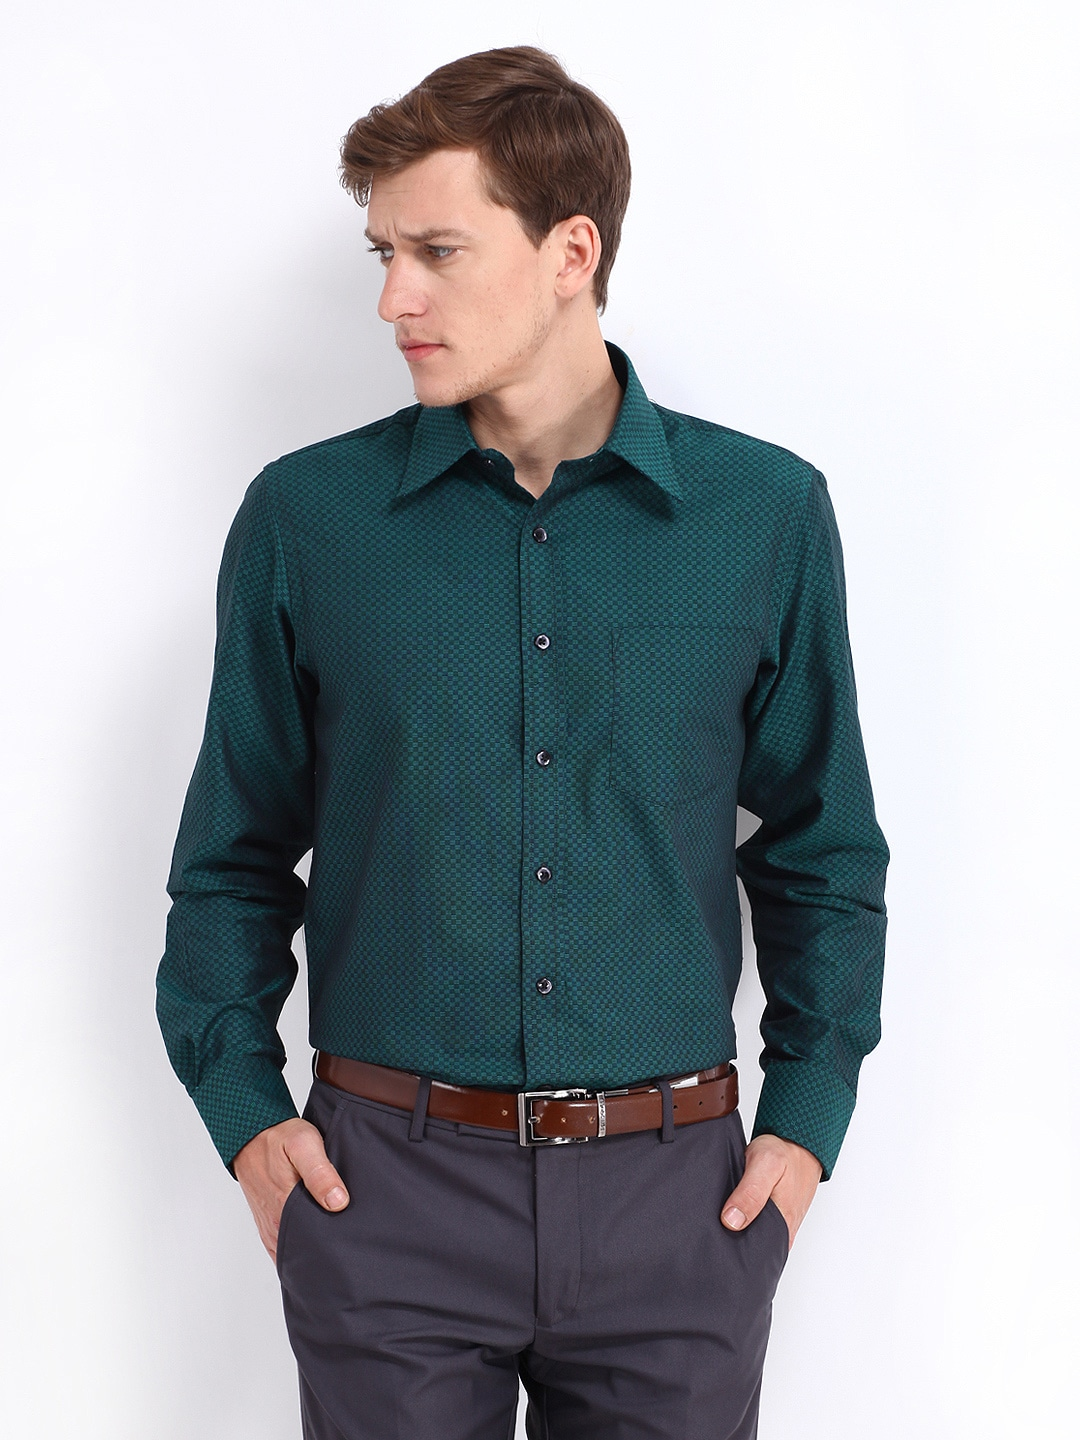 Oxemberg Oxemberg Men Teal Green Slim Fit Formal Shirt (Multicolor)